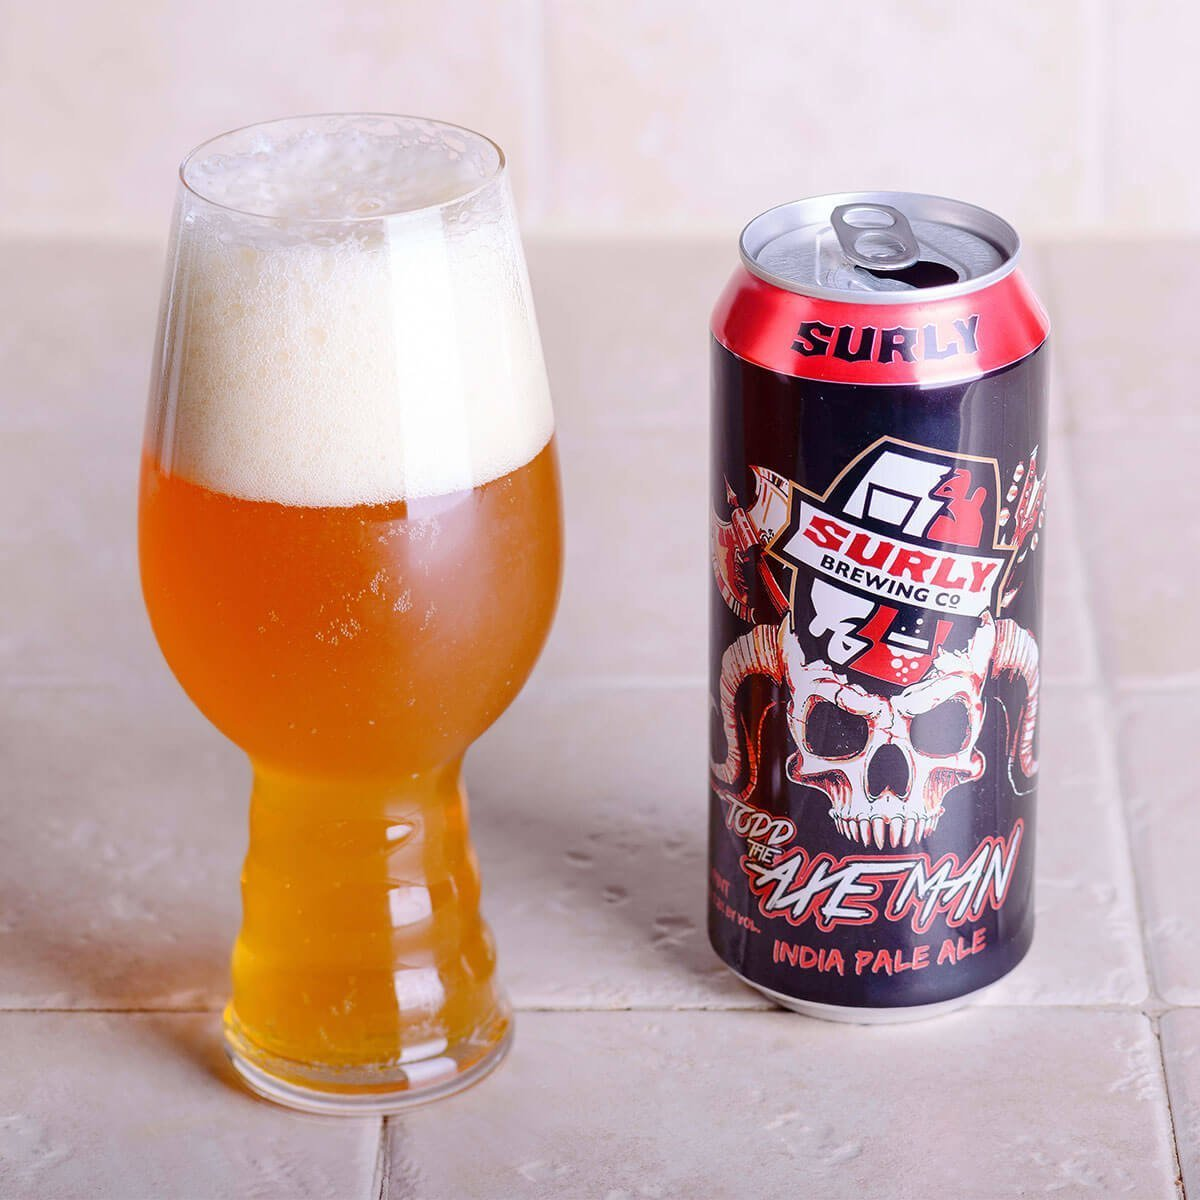 Todd The Axe Man is an American IPA brewed by Surly Brewing Co. that's a refreshing blend of pine and citrus with tropical fruit and toasted bread.